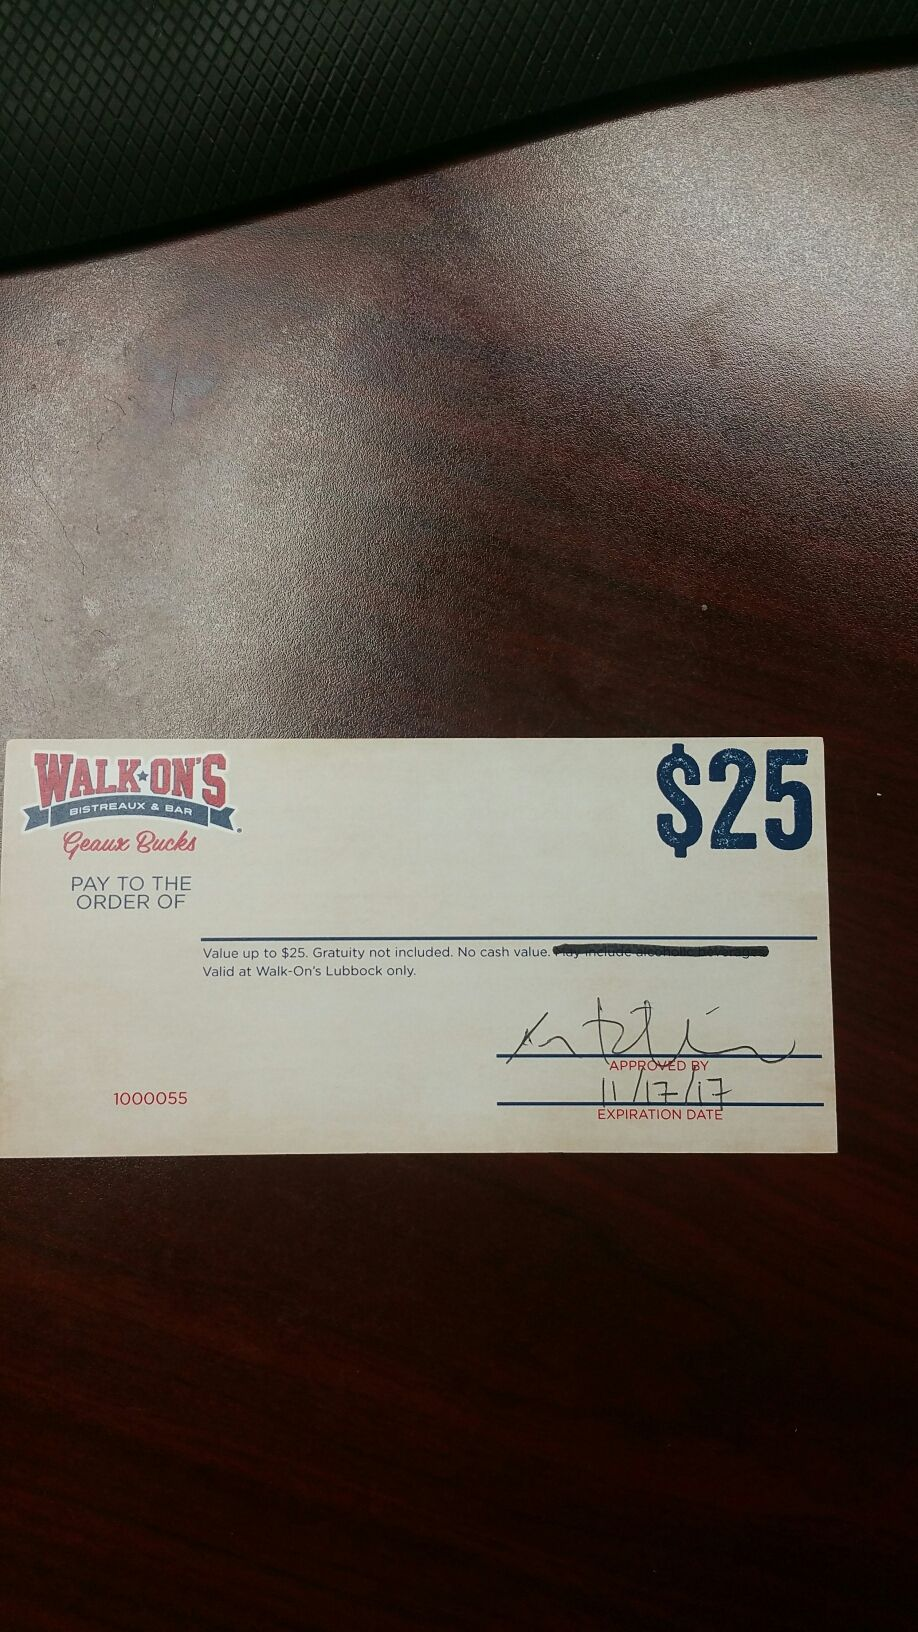 25 gift certificate to walkons located at 2630 w loop